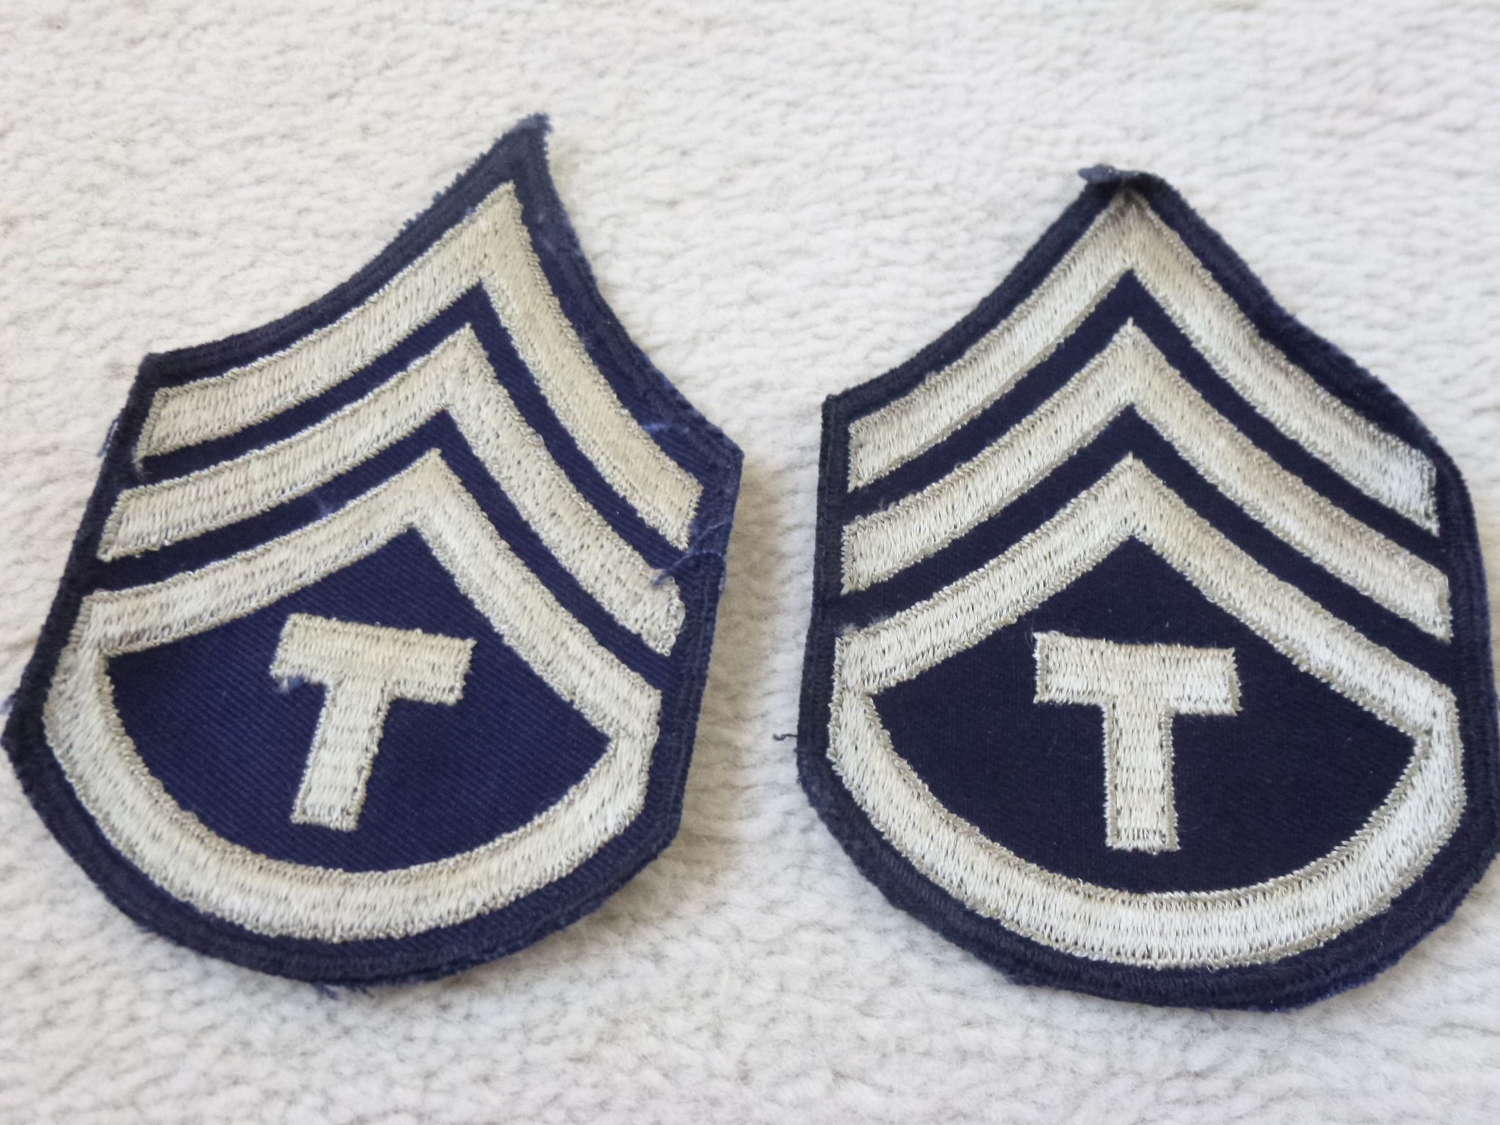 US army Technical Sergeant stripes